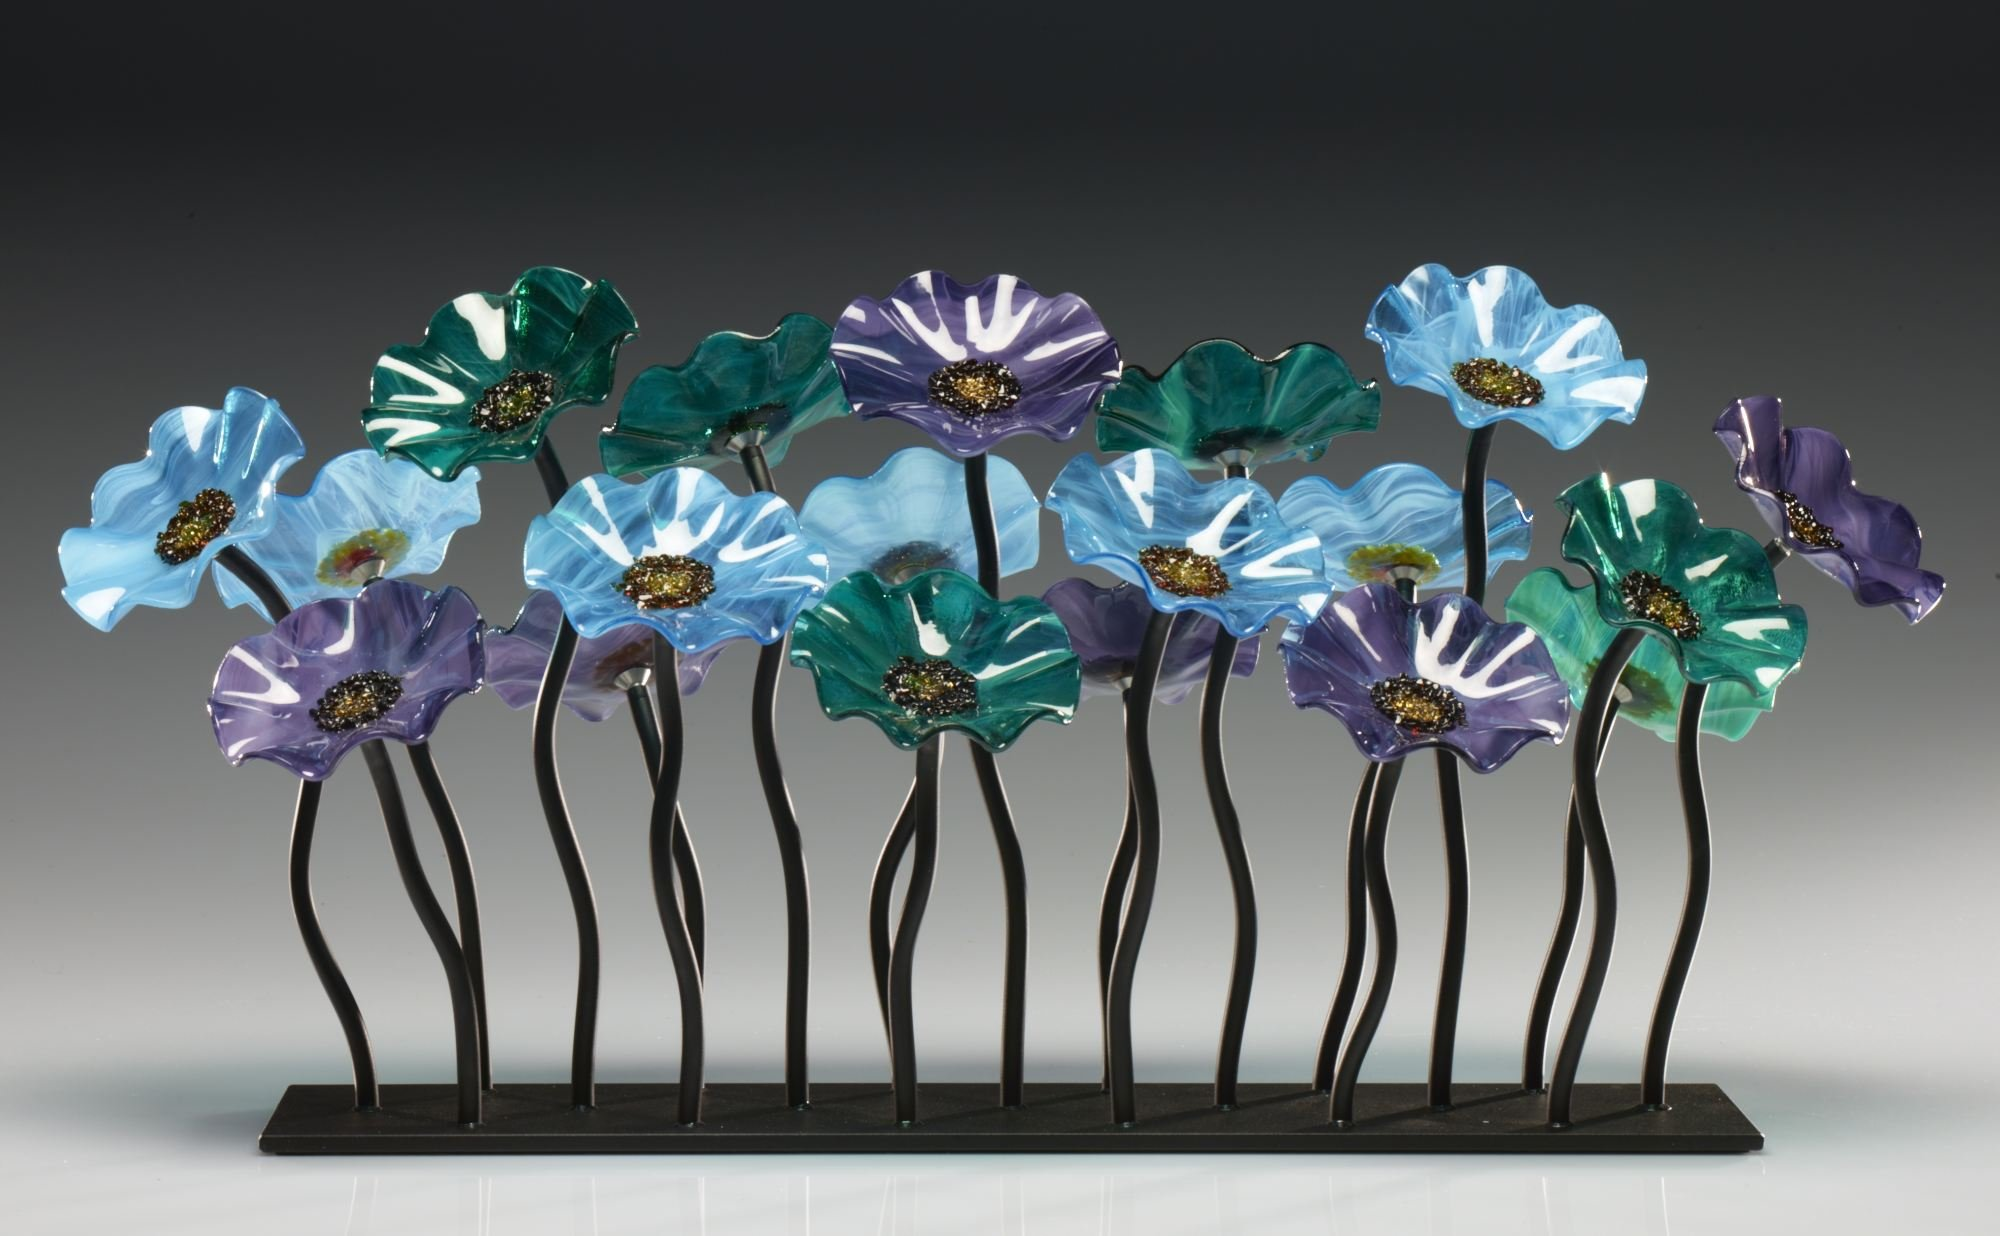 Topaz Glass Flower Garden by Scott Johnson and Shawn Johnson (Art Glass  Sculpture) | Artful Home